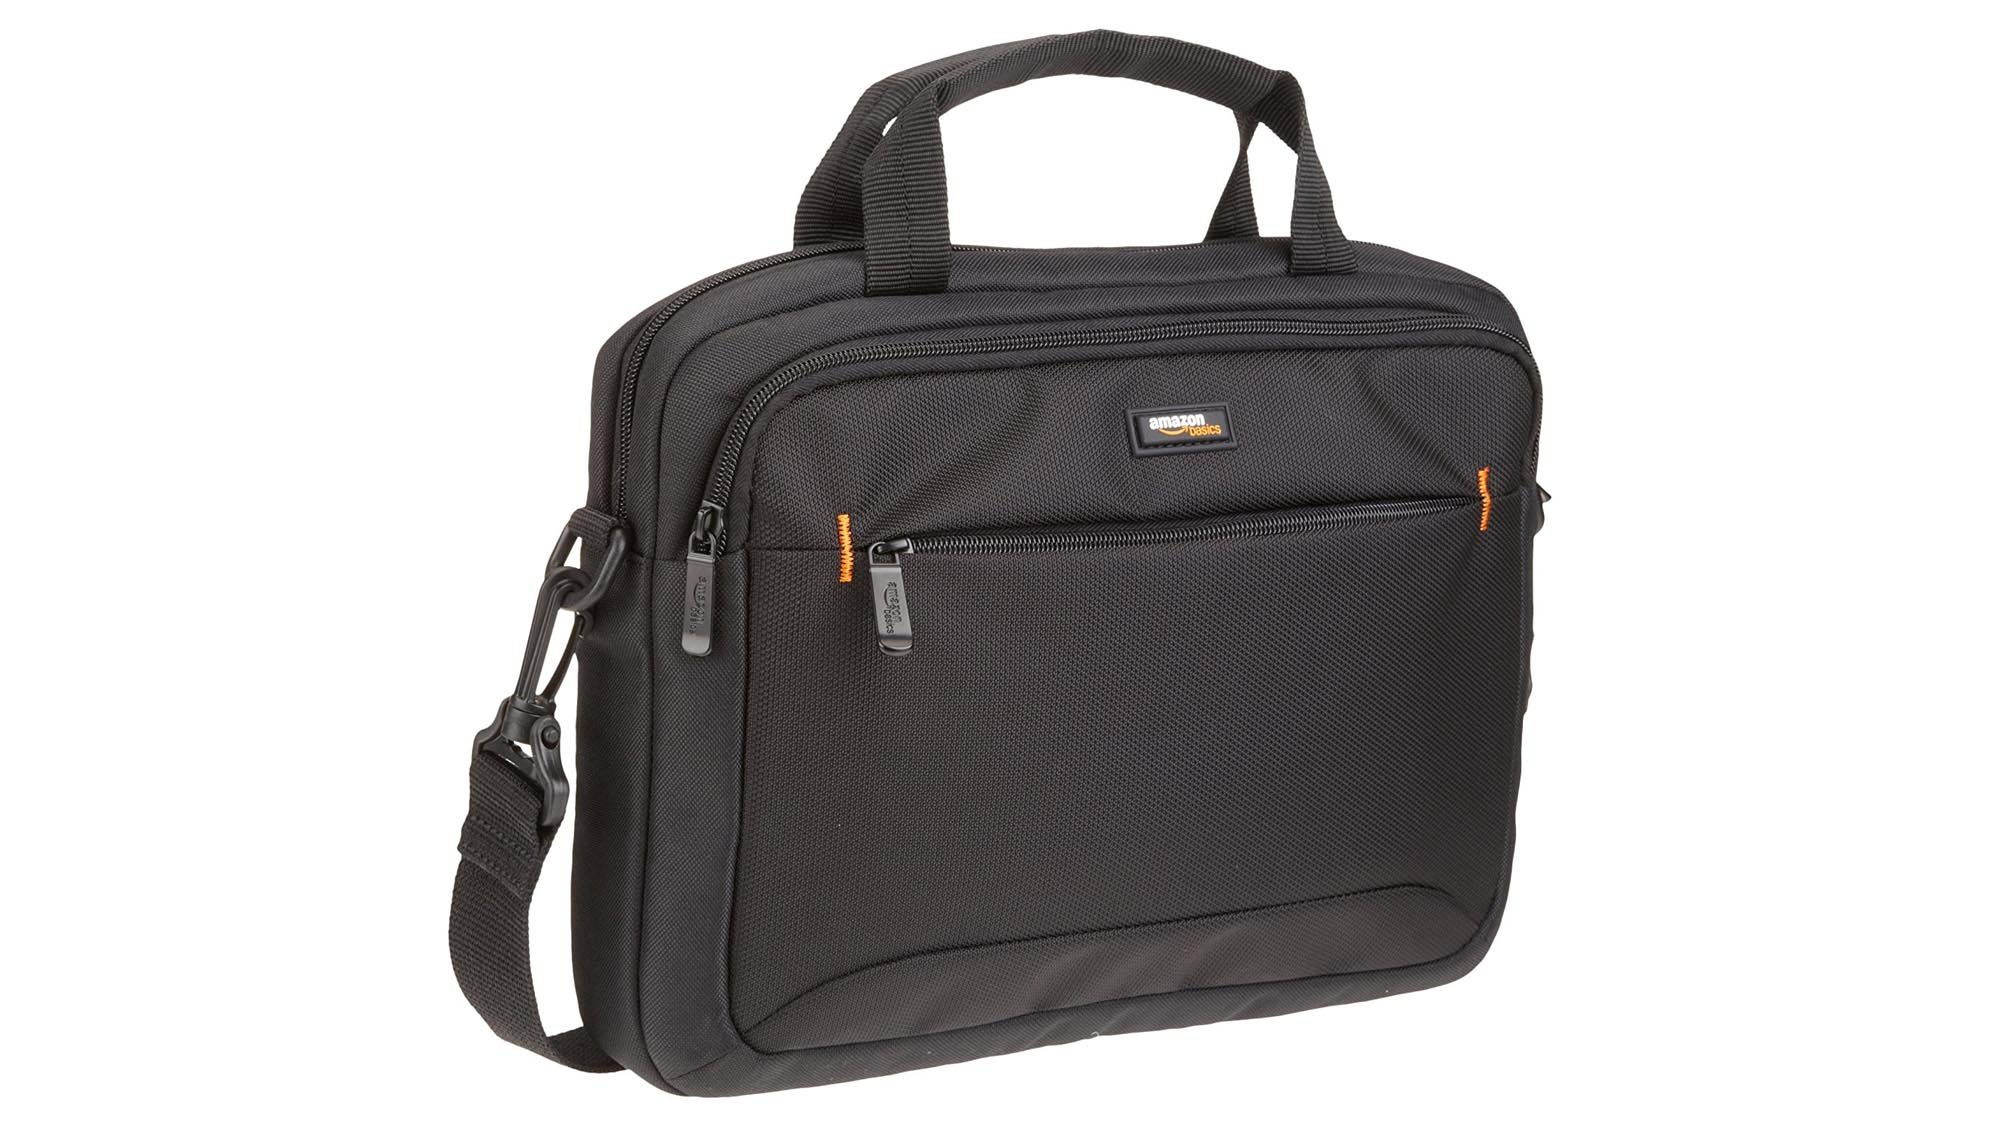 0f965ab72b0a Best laptop bag 2019: The best laptop backpacks, sleeves, cases and ...